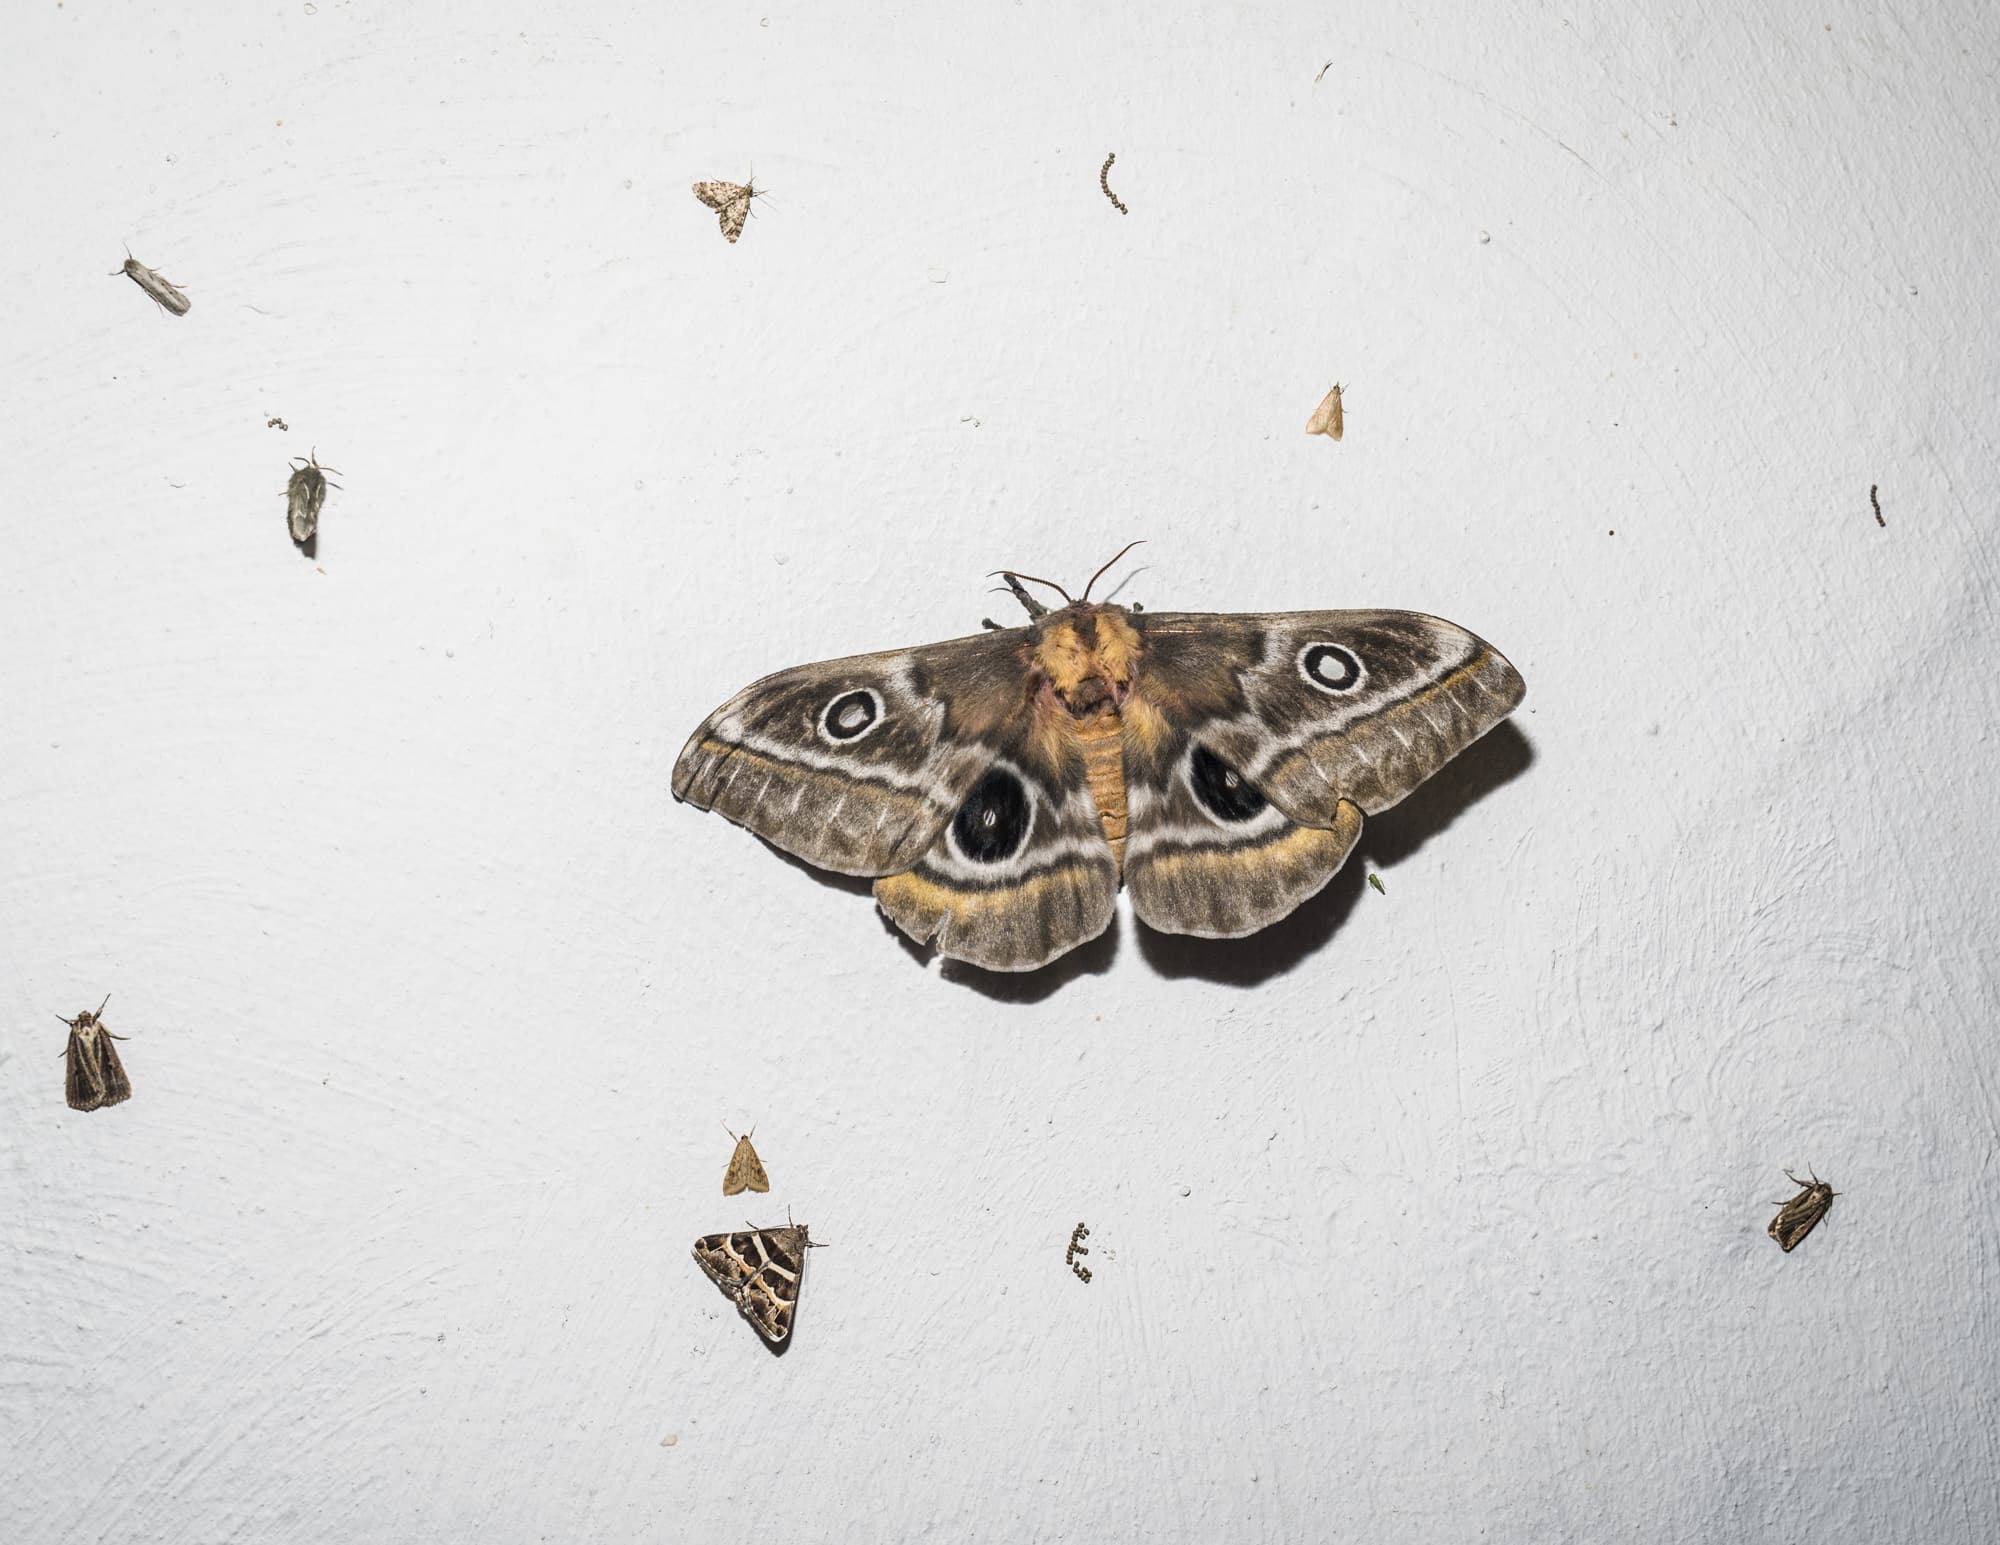 Moths in the light in South Africa on April 17th, 2017.